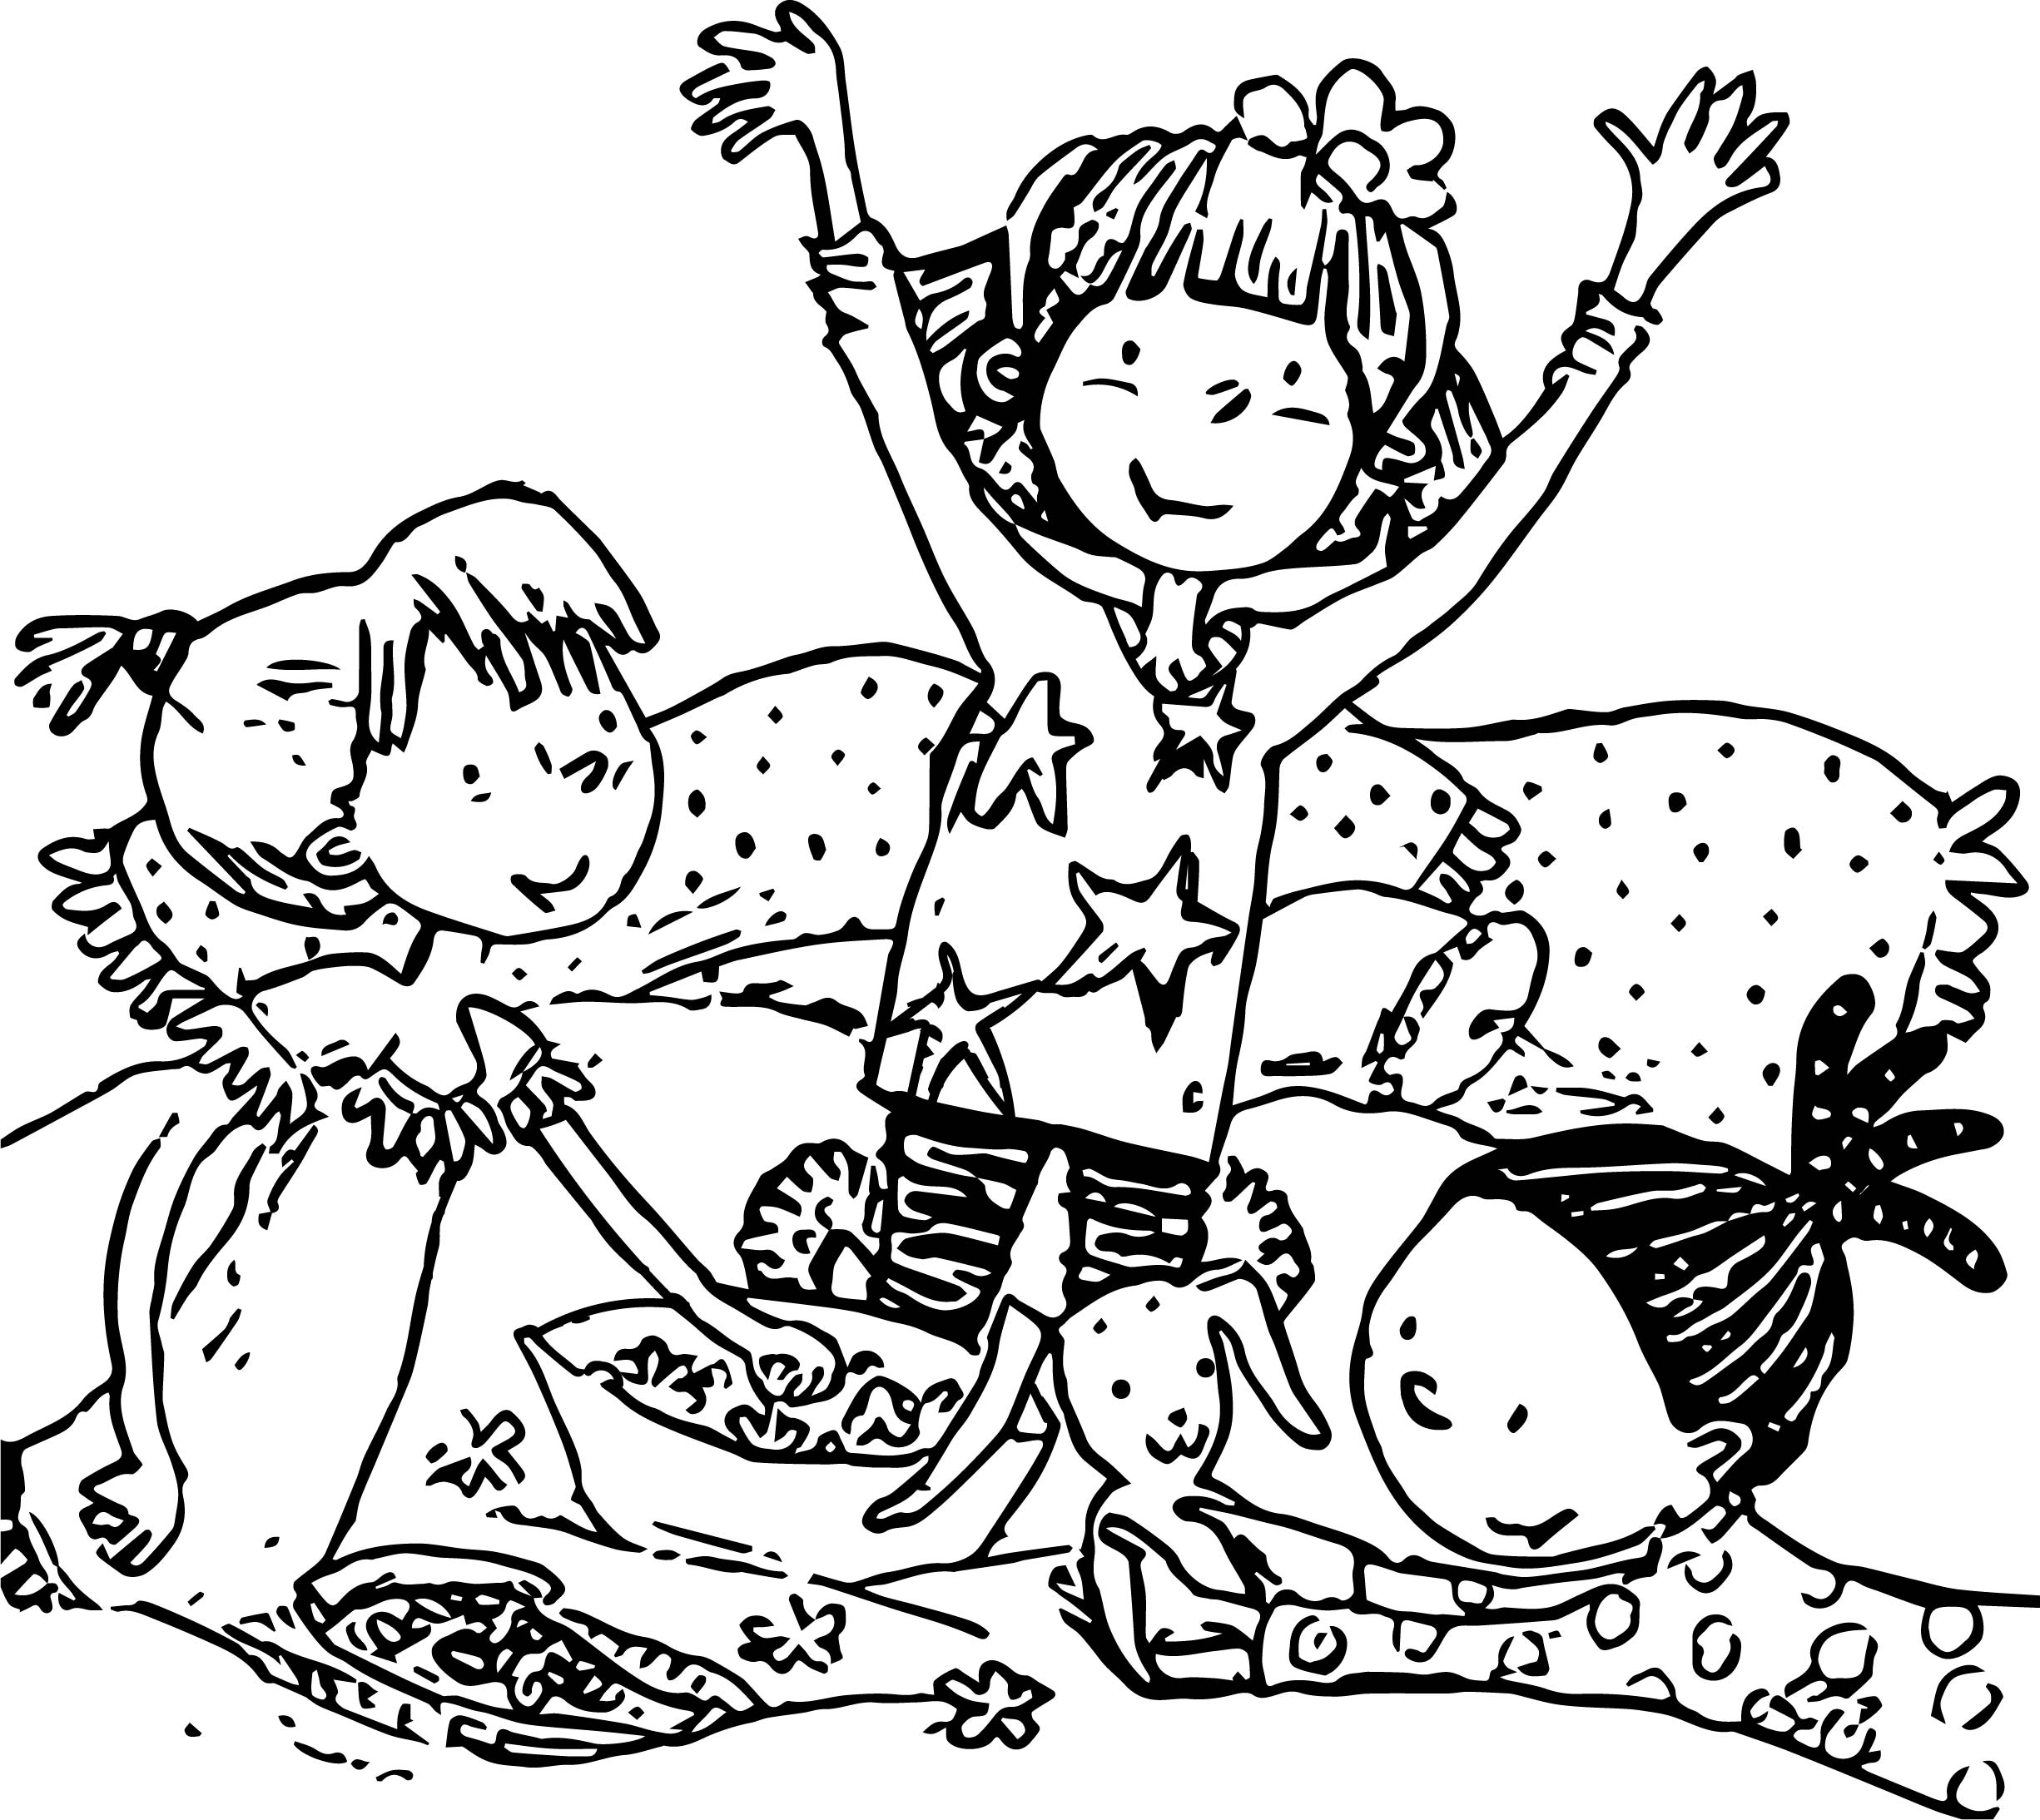 Amelia Bedelia With Friends Coloring Page